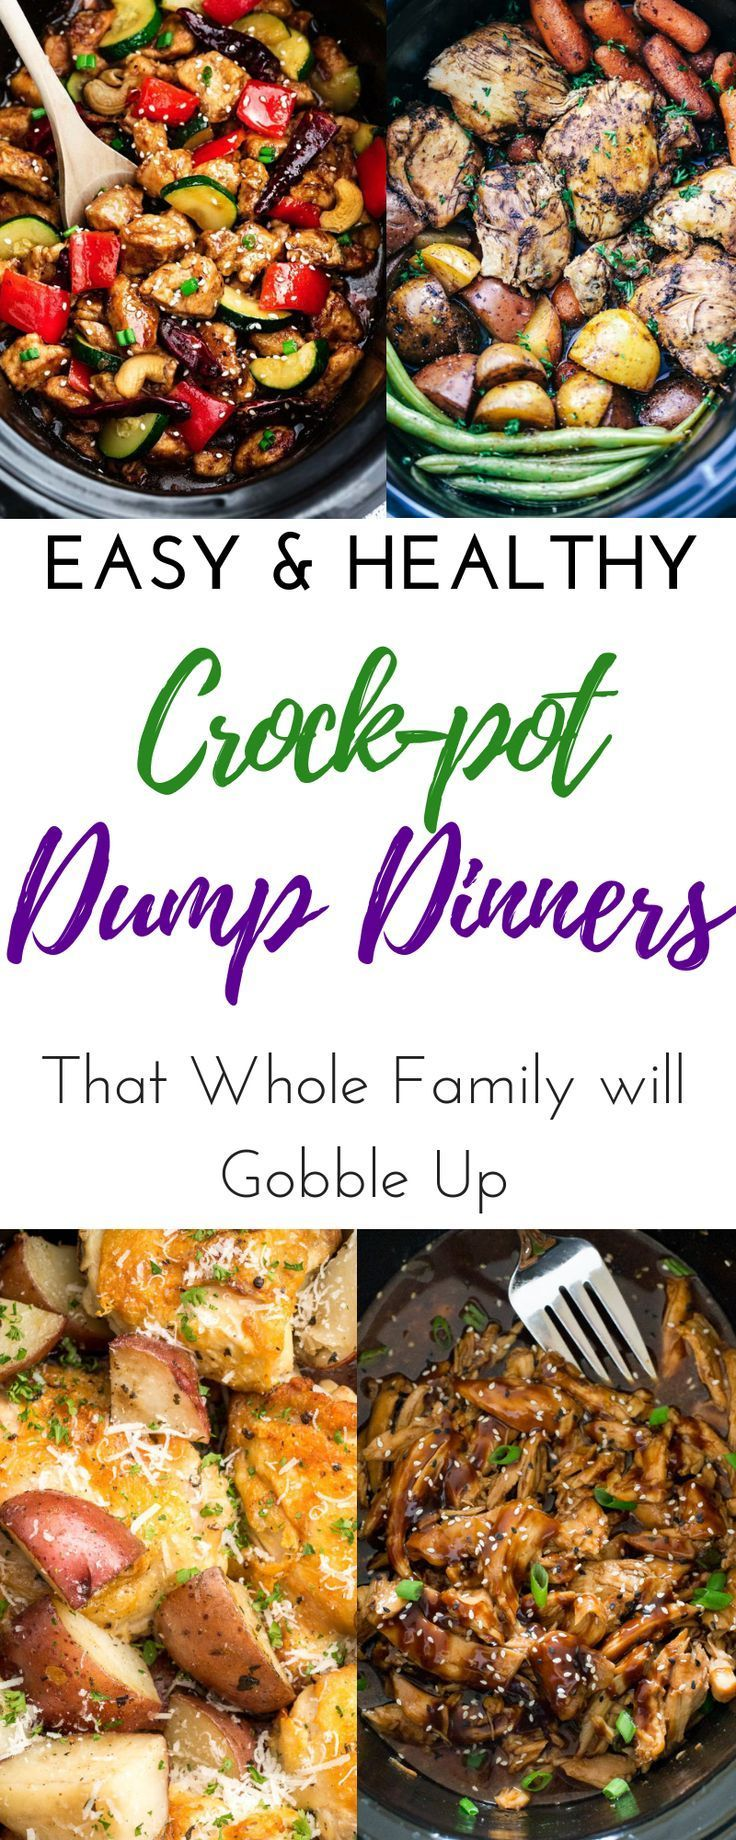 Easy Healthy Slow Cooker Recipes The Family Will Love For Your Crock Pot Healthy Slow Cooker Slow Cooker Recipes Healthy Slow Cooker Recipes